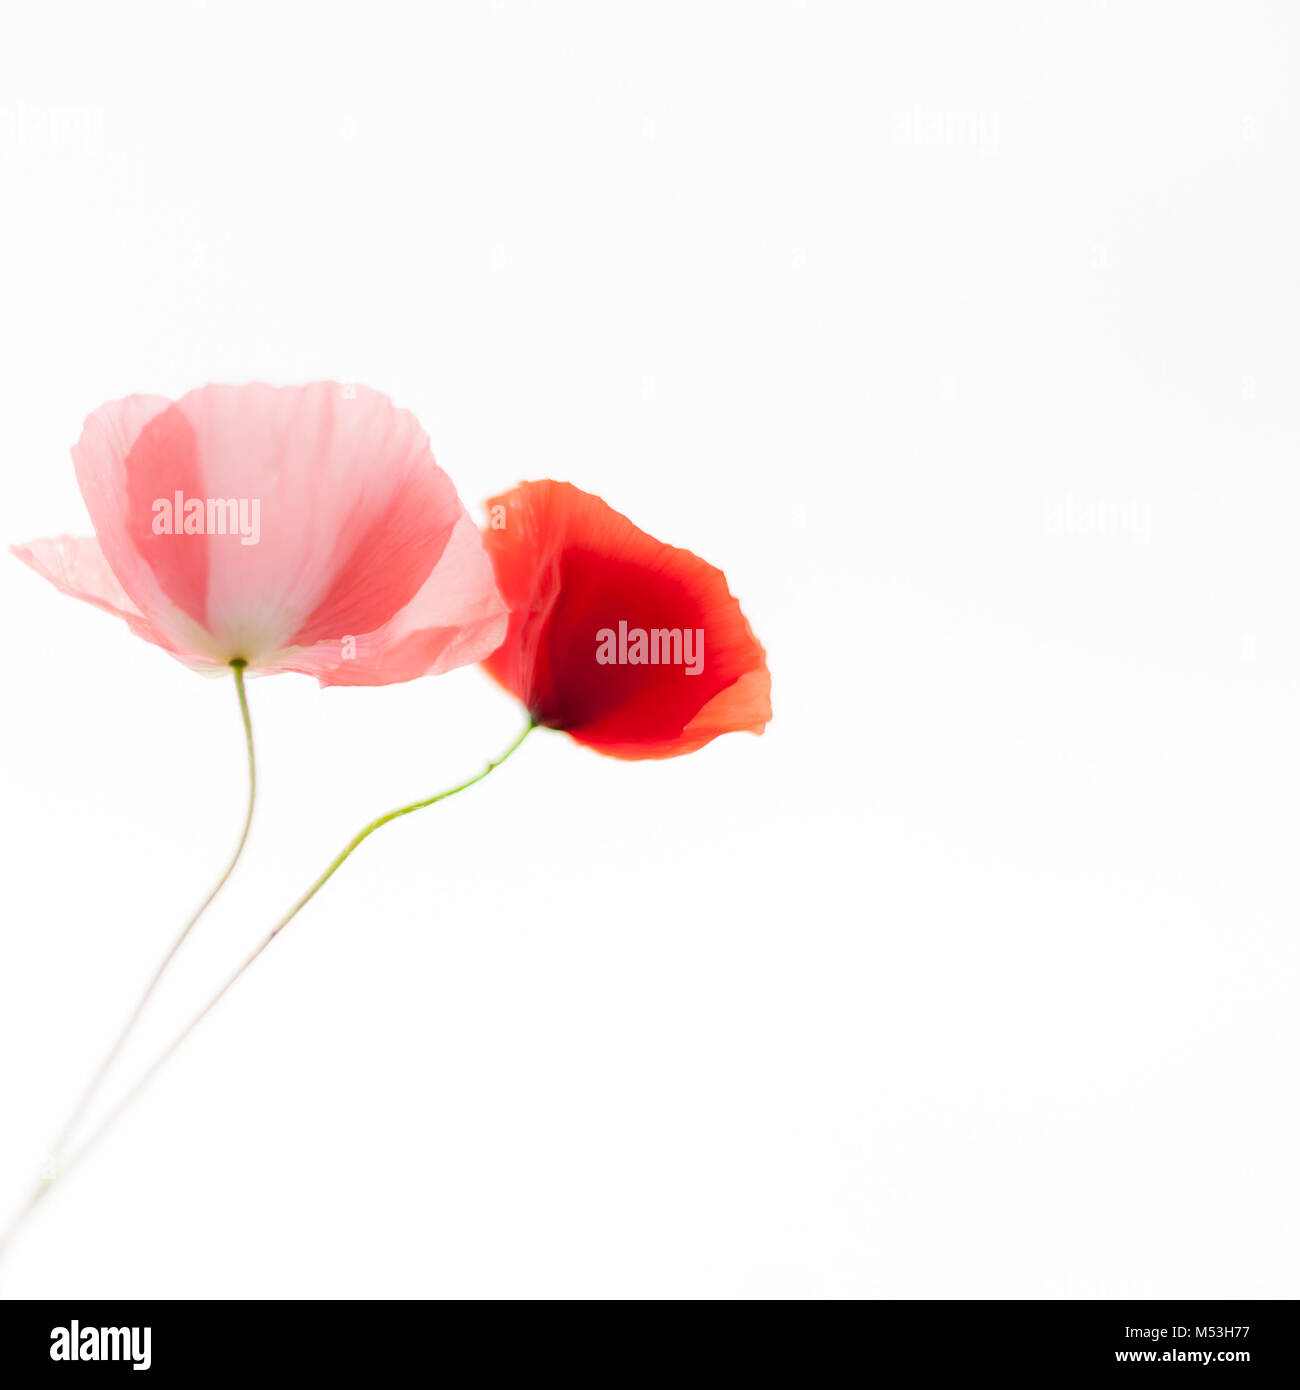 Poppies flowers on the white background. Soft, gentle, airy, elegant artistic image. - Stock Image